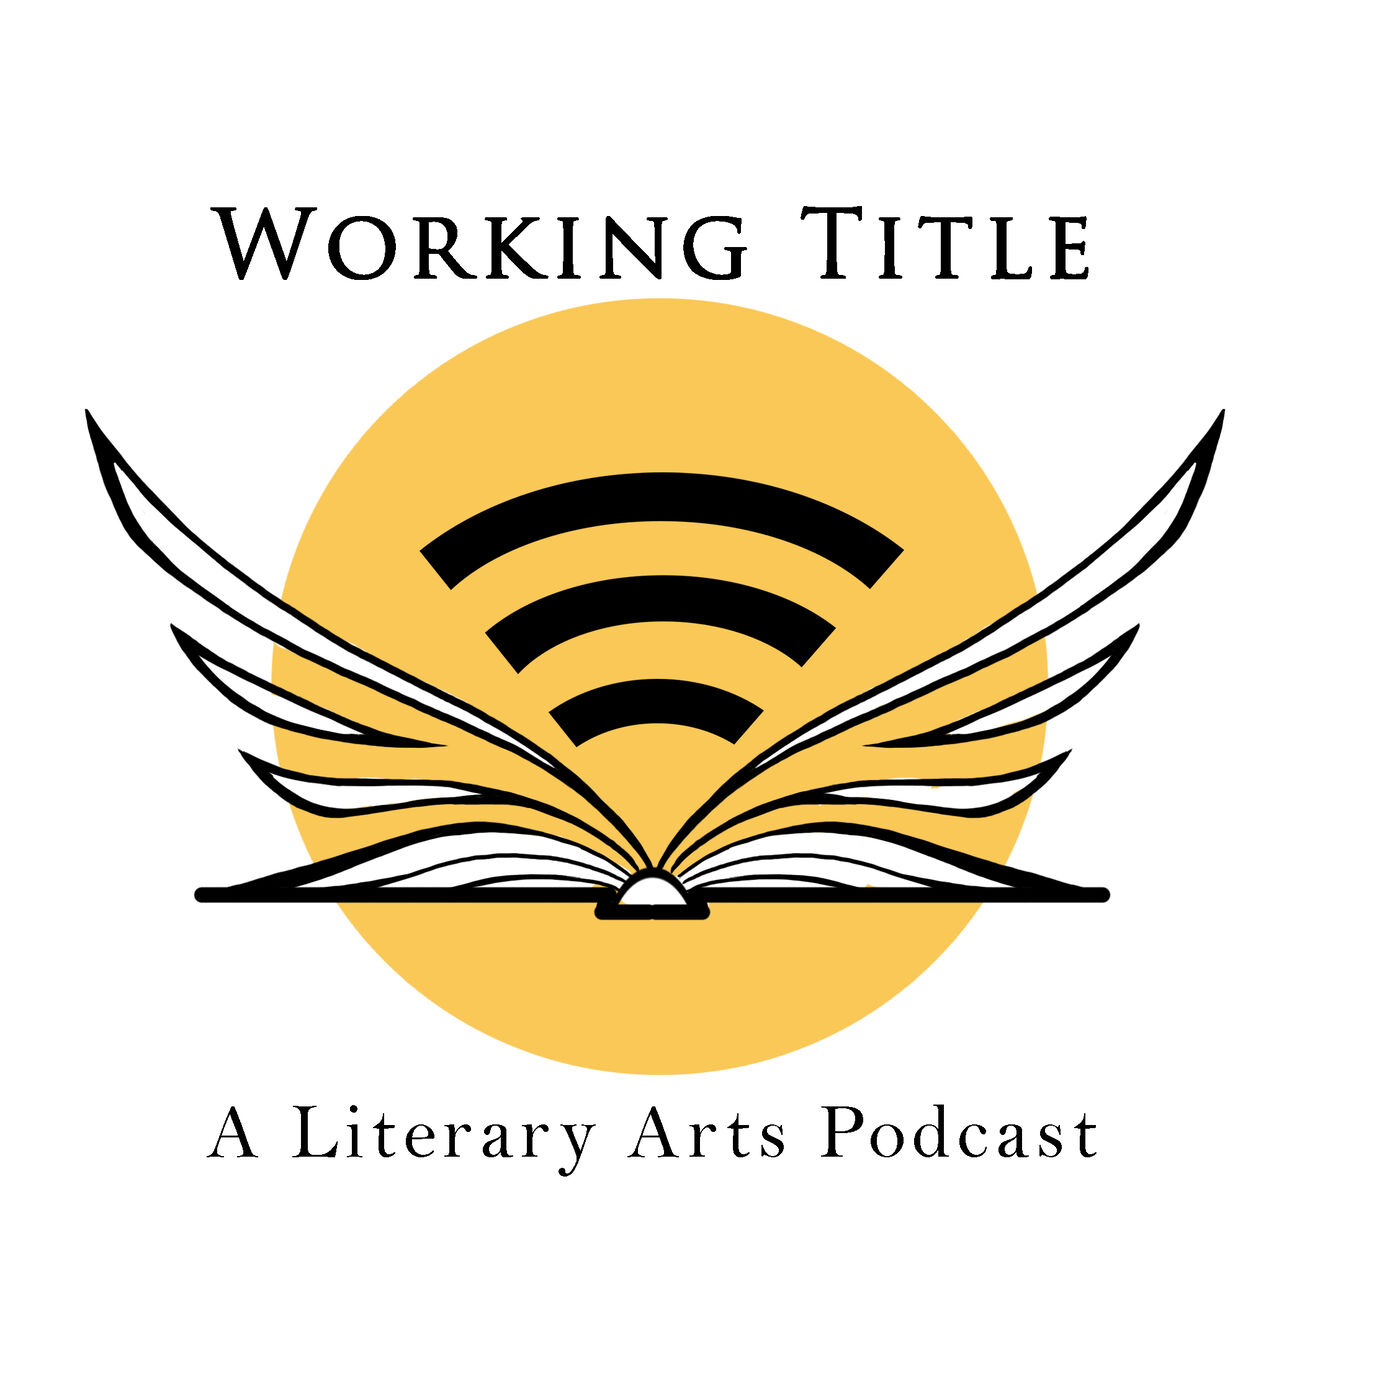 Working Title: A Literary Arts Podcast - Winter Solstice Stories